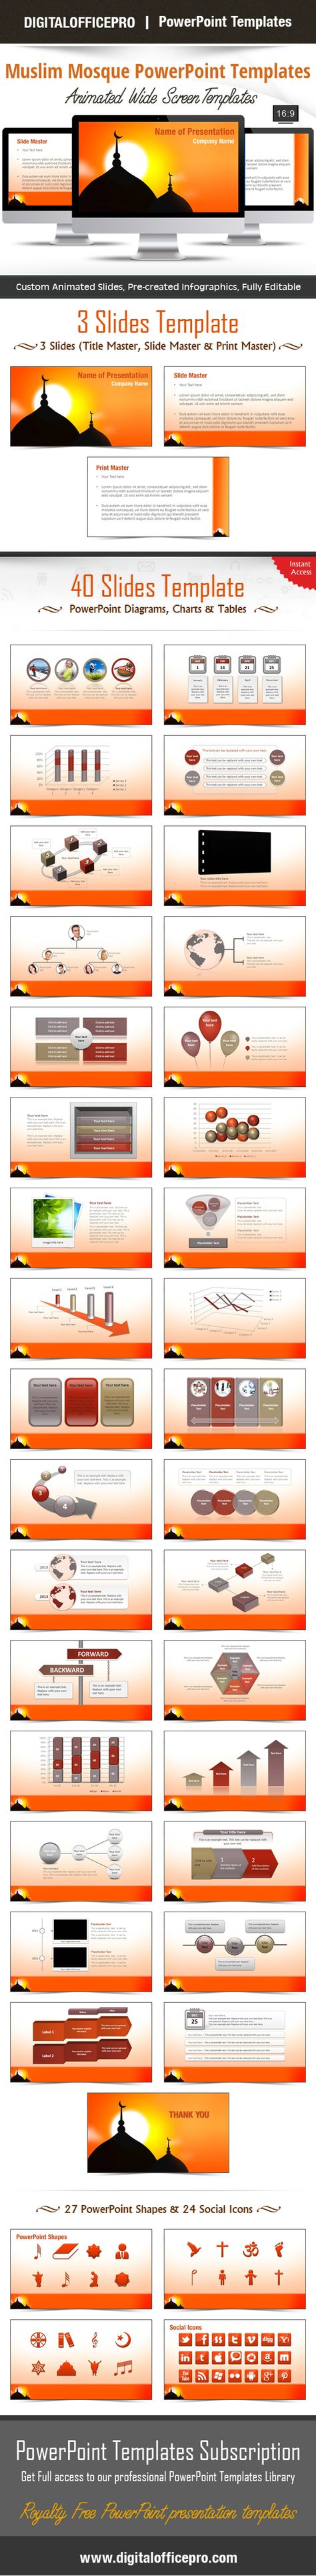 Purple mosque powerpoint template powerpoint templates purple mosque powerpoint template powerpoint templates pinterest mosque and template toneelgroepblik Image collections